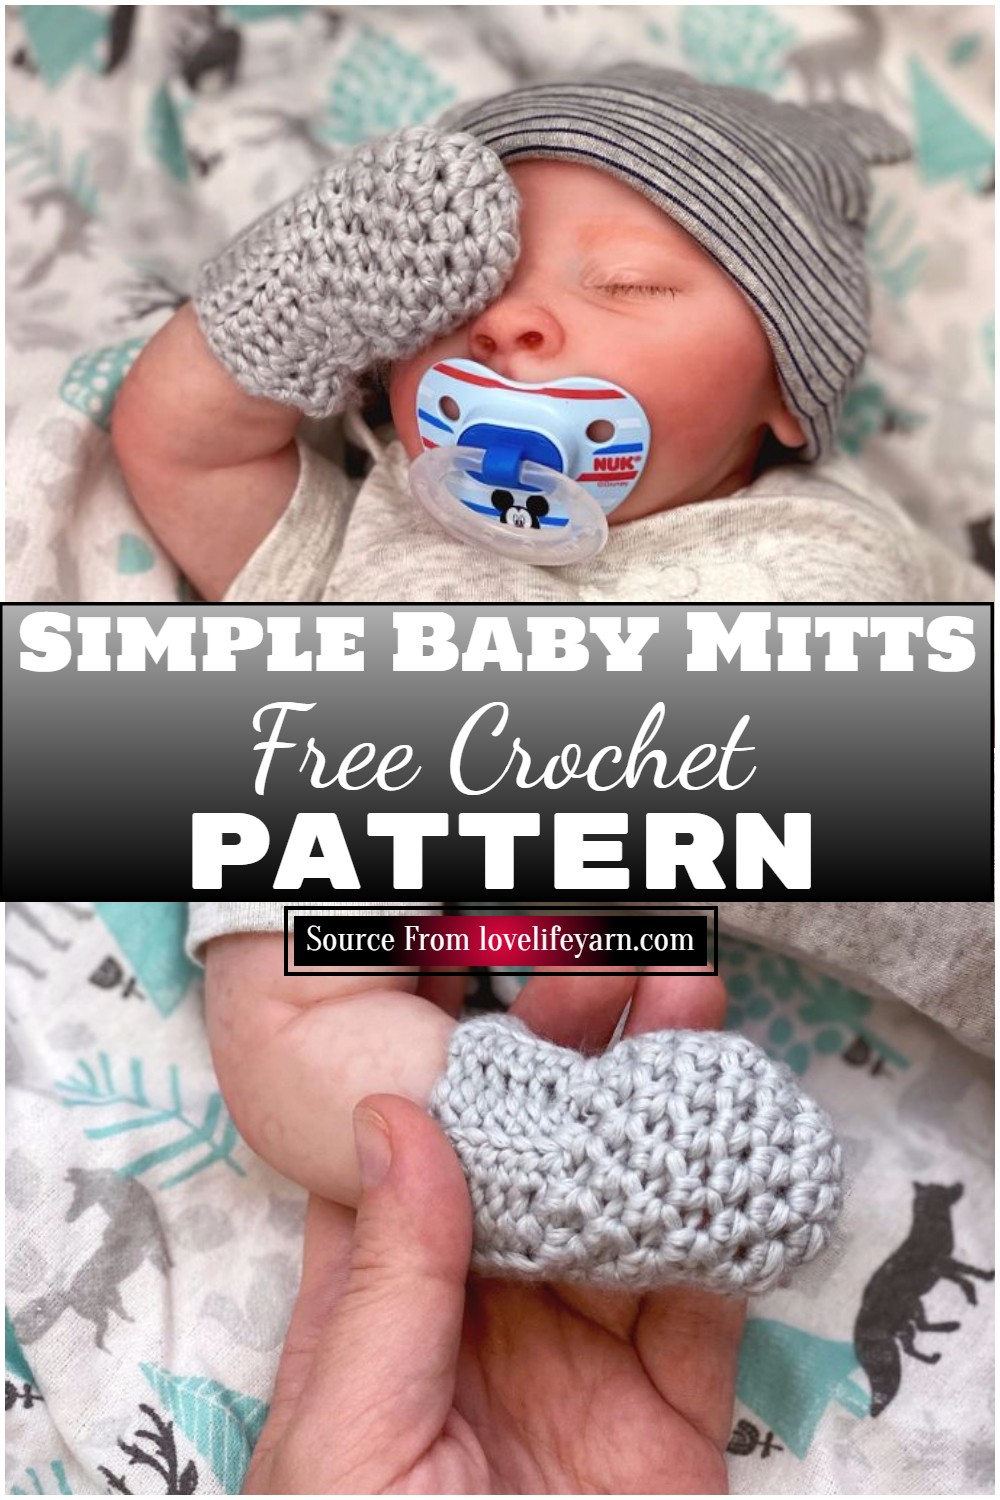 Free Crochet Simple Baby Mitts Pattern 1